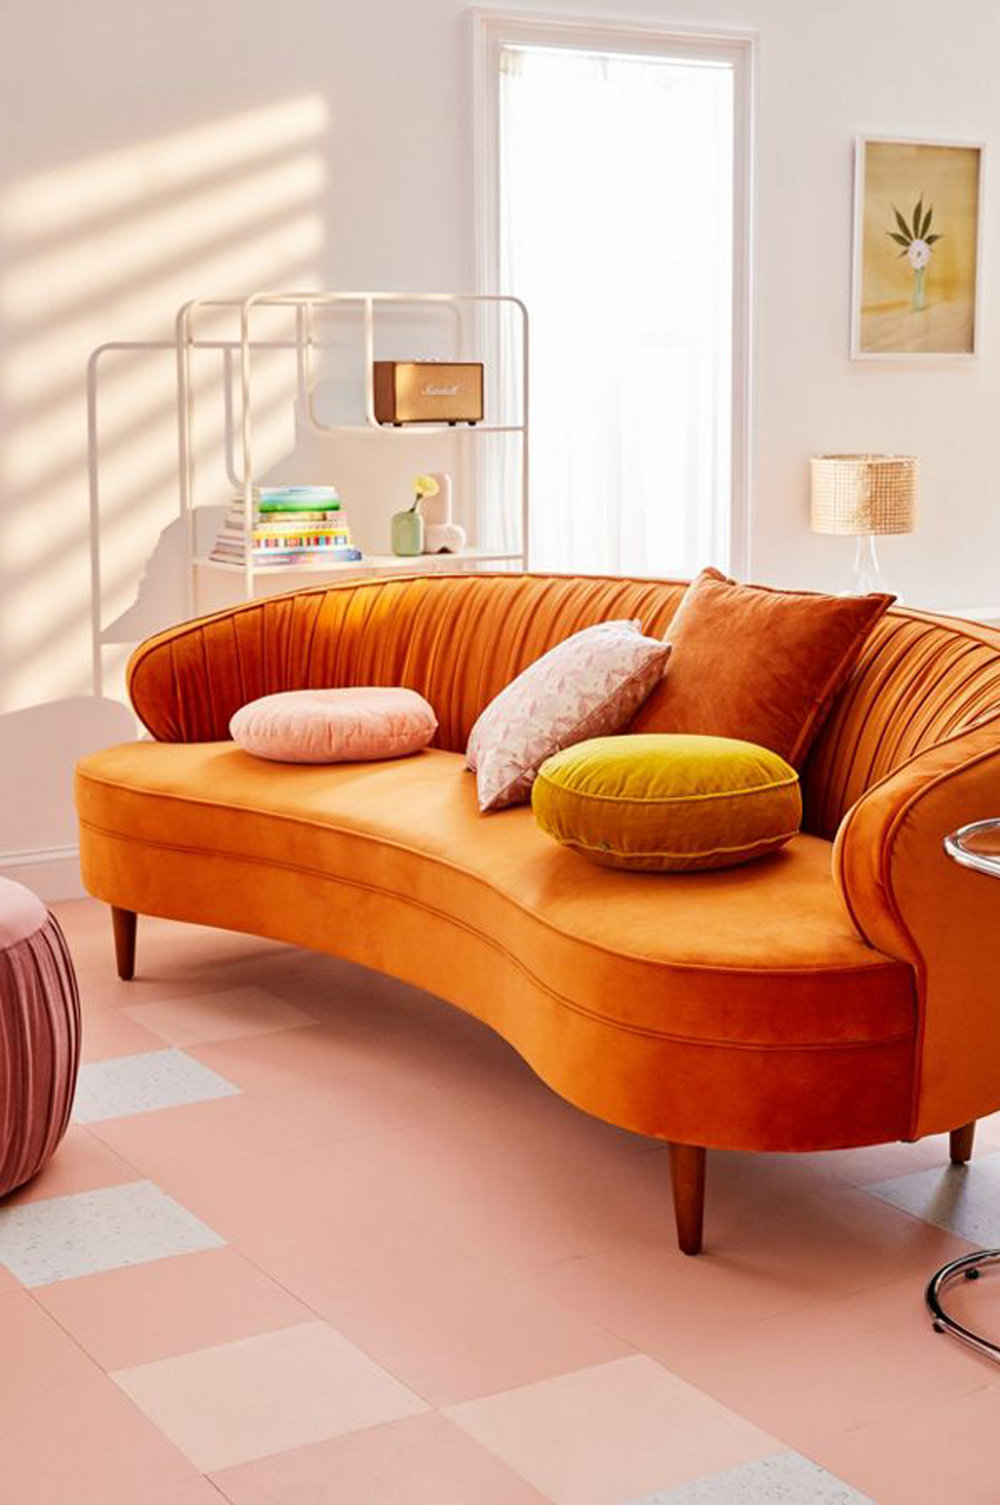 feb-cart-orange-velvet-sofa.jpg